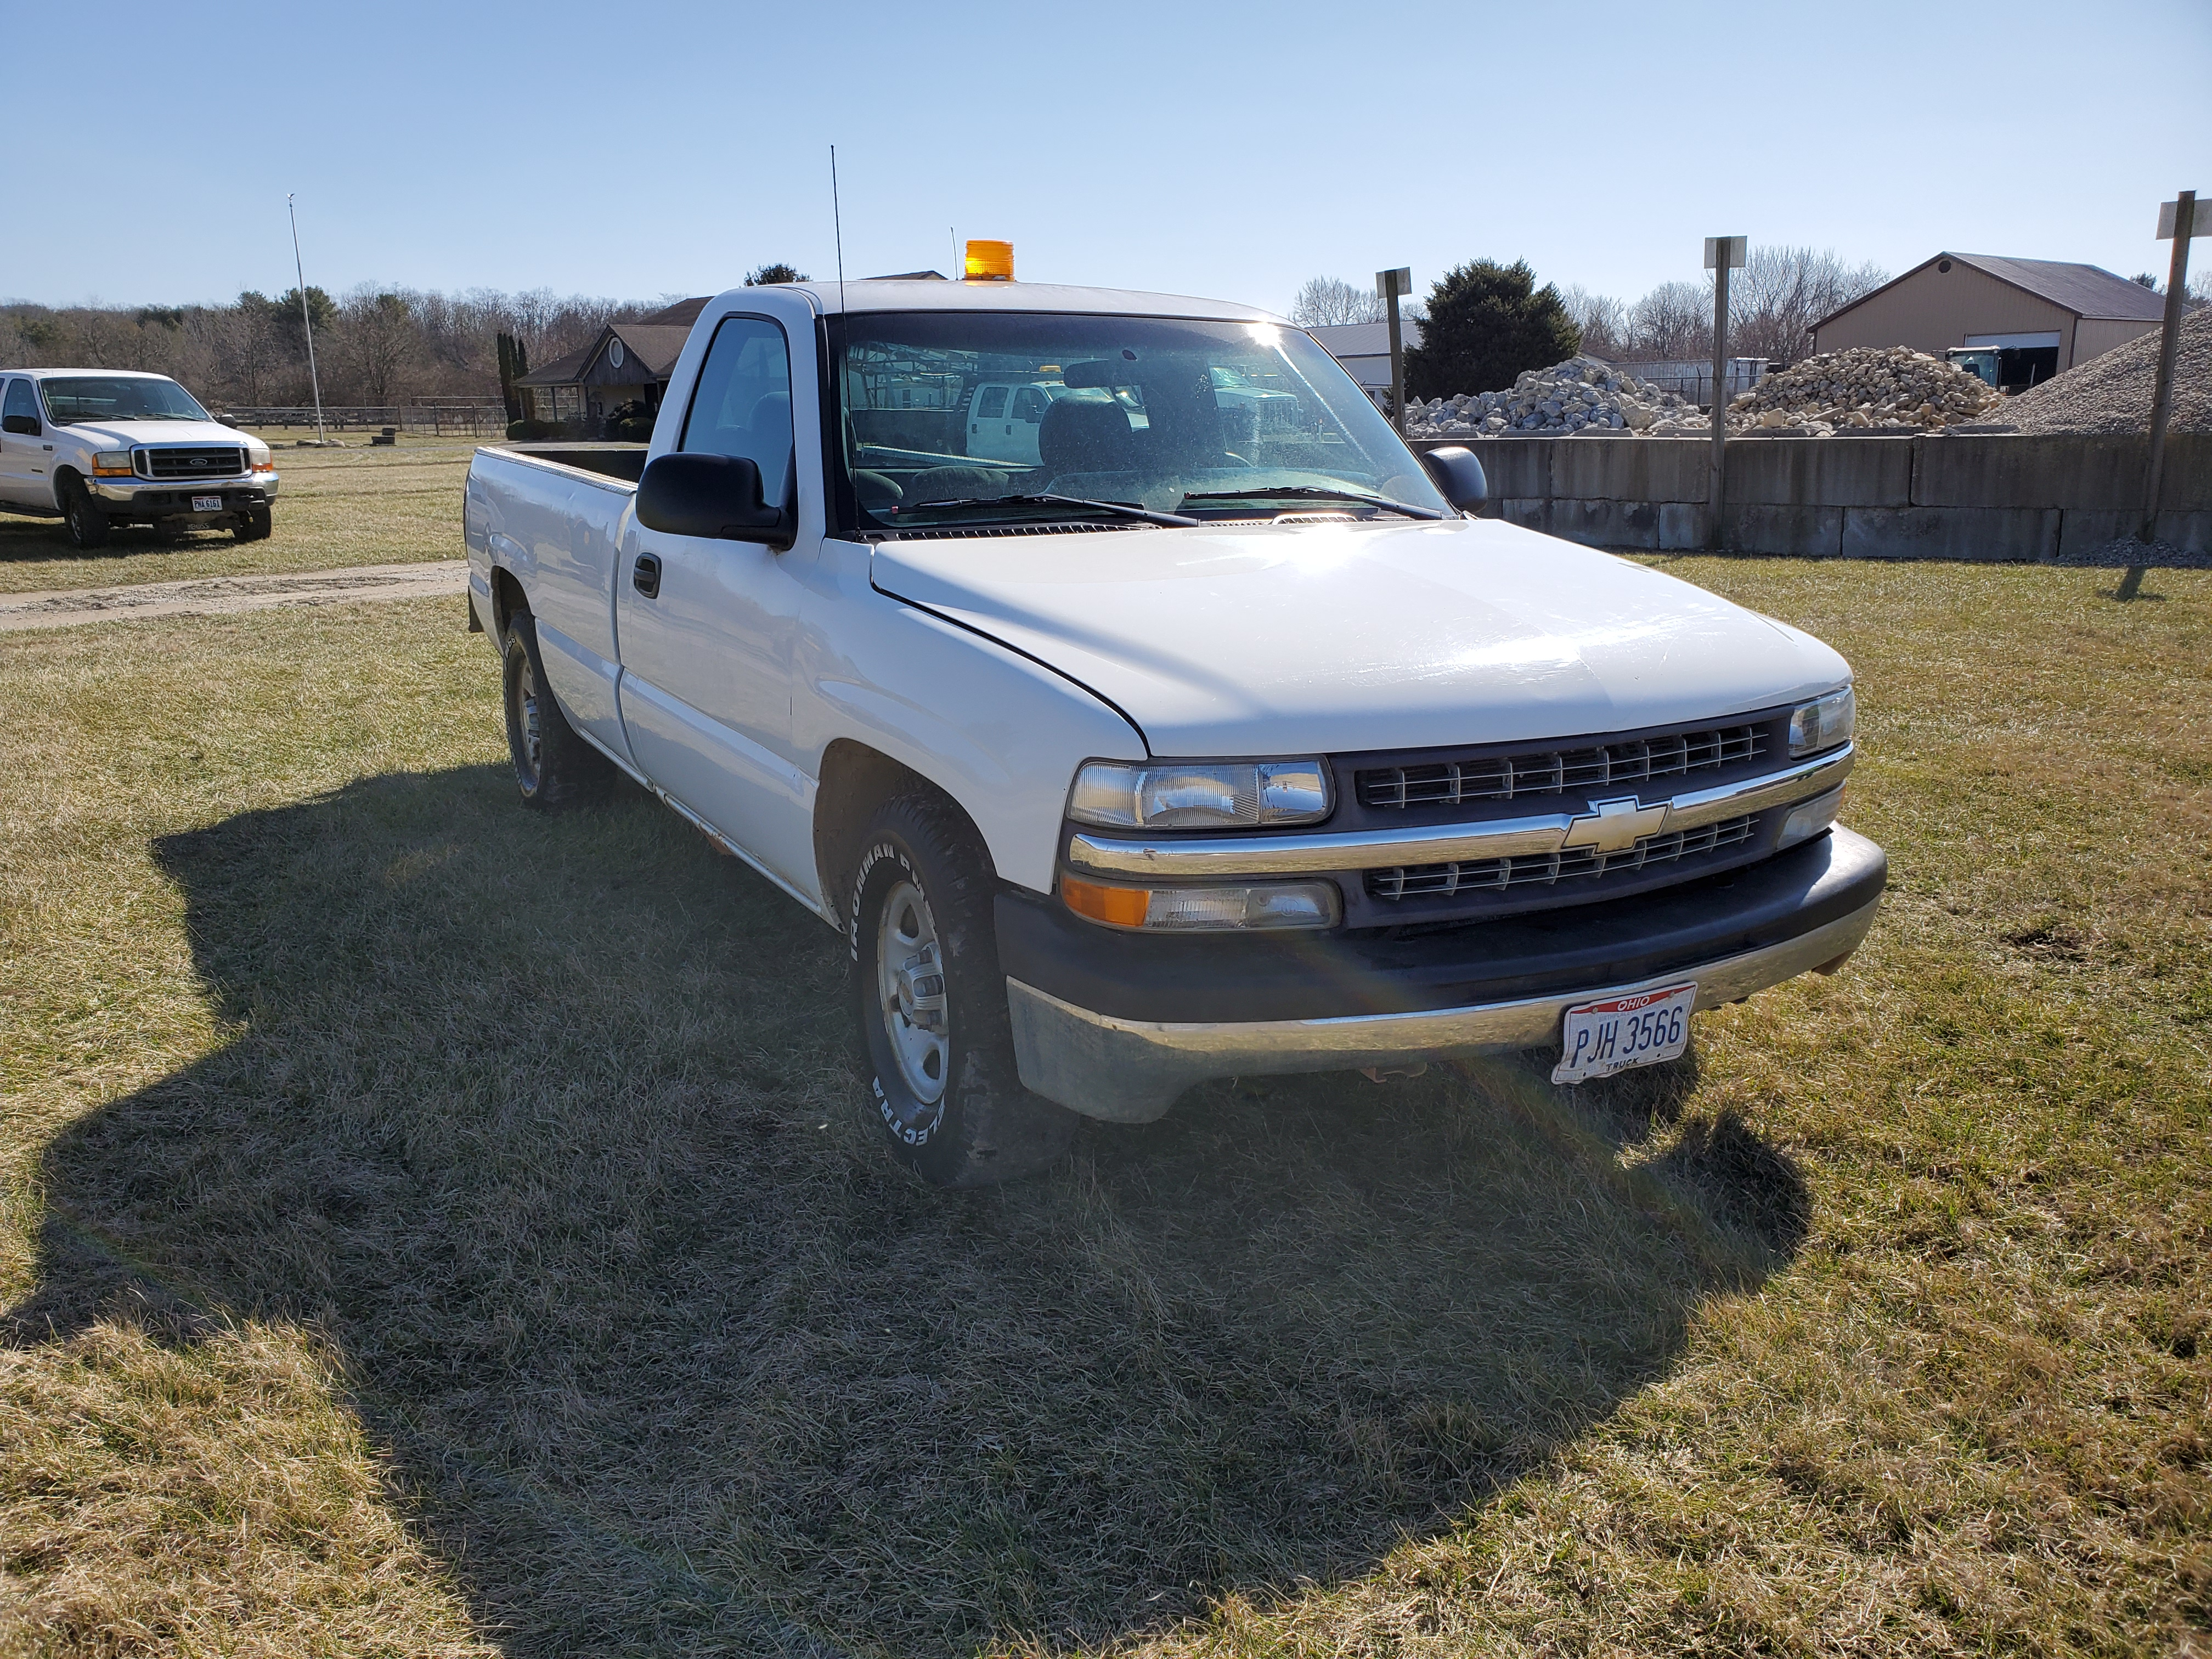 2001 Chevrolet 1500 Silverado 1500, 8 ft. Bed, 4.3 Liter Gasoline Engine, Automatic, 137,712 Miles - Image 3 of 17